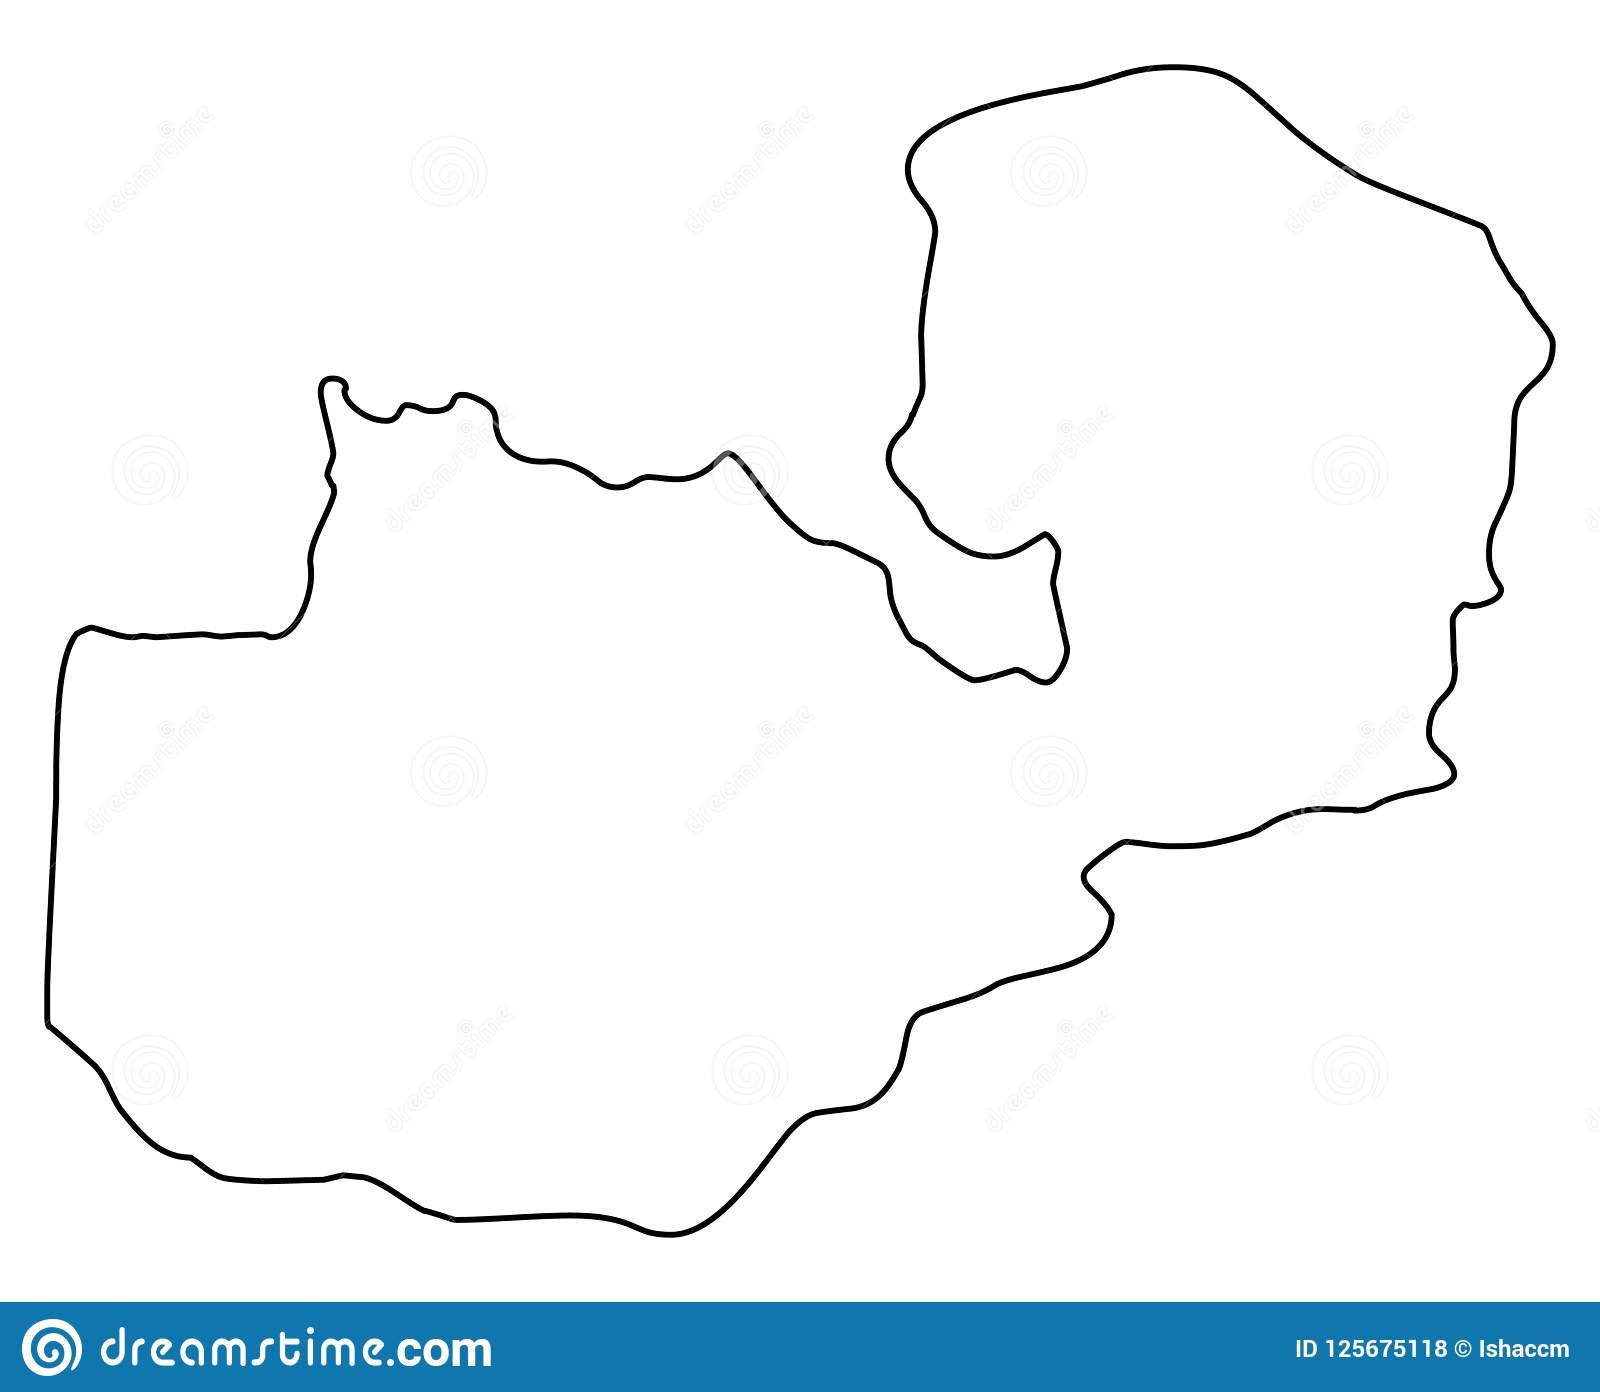 Zambian Map Vector.Zambia Map Outline Vector Illustration Stock Vector